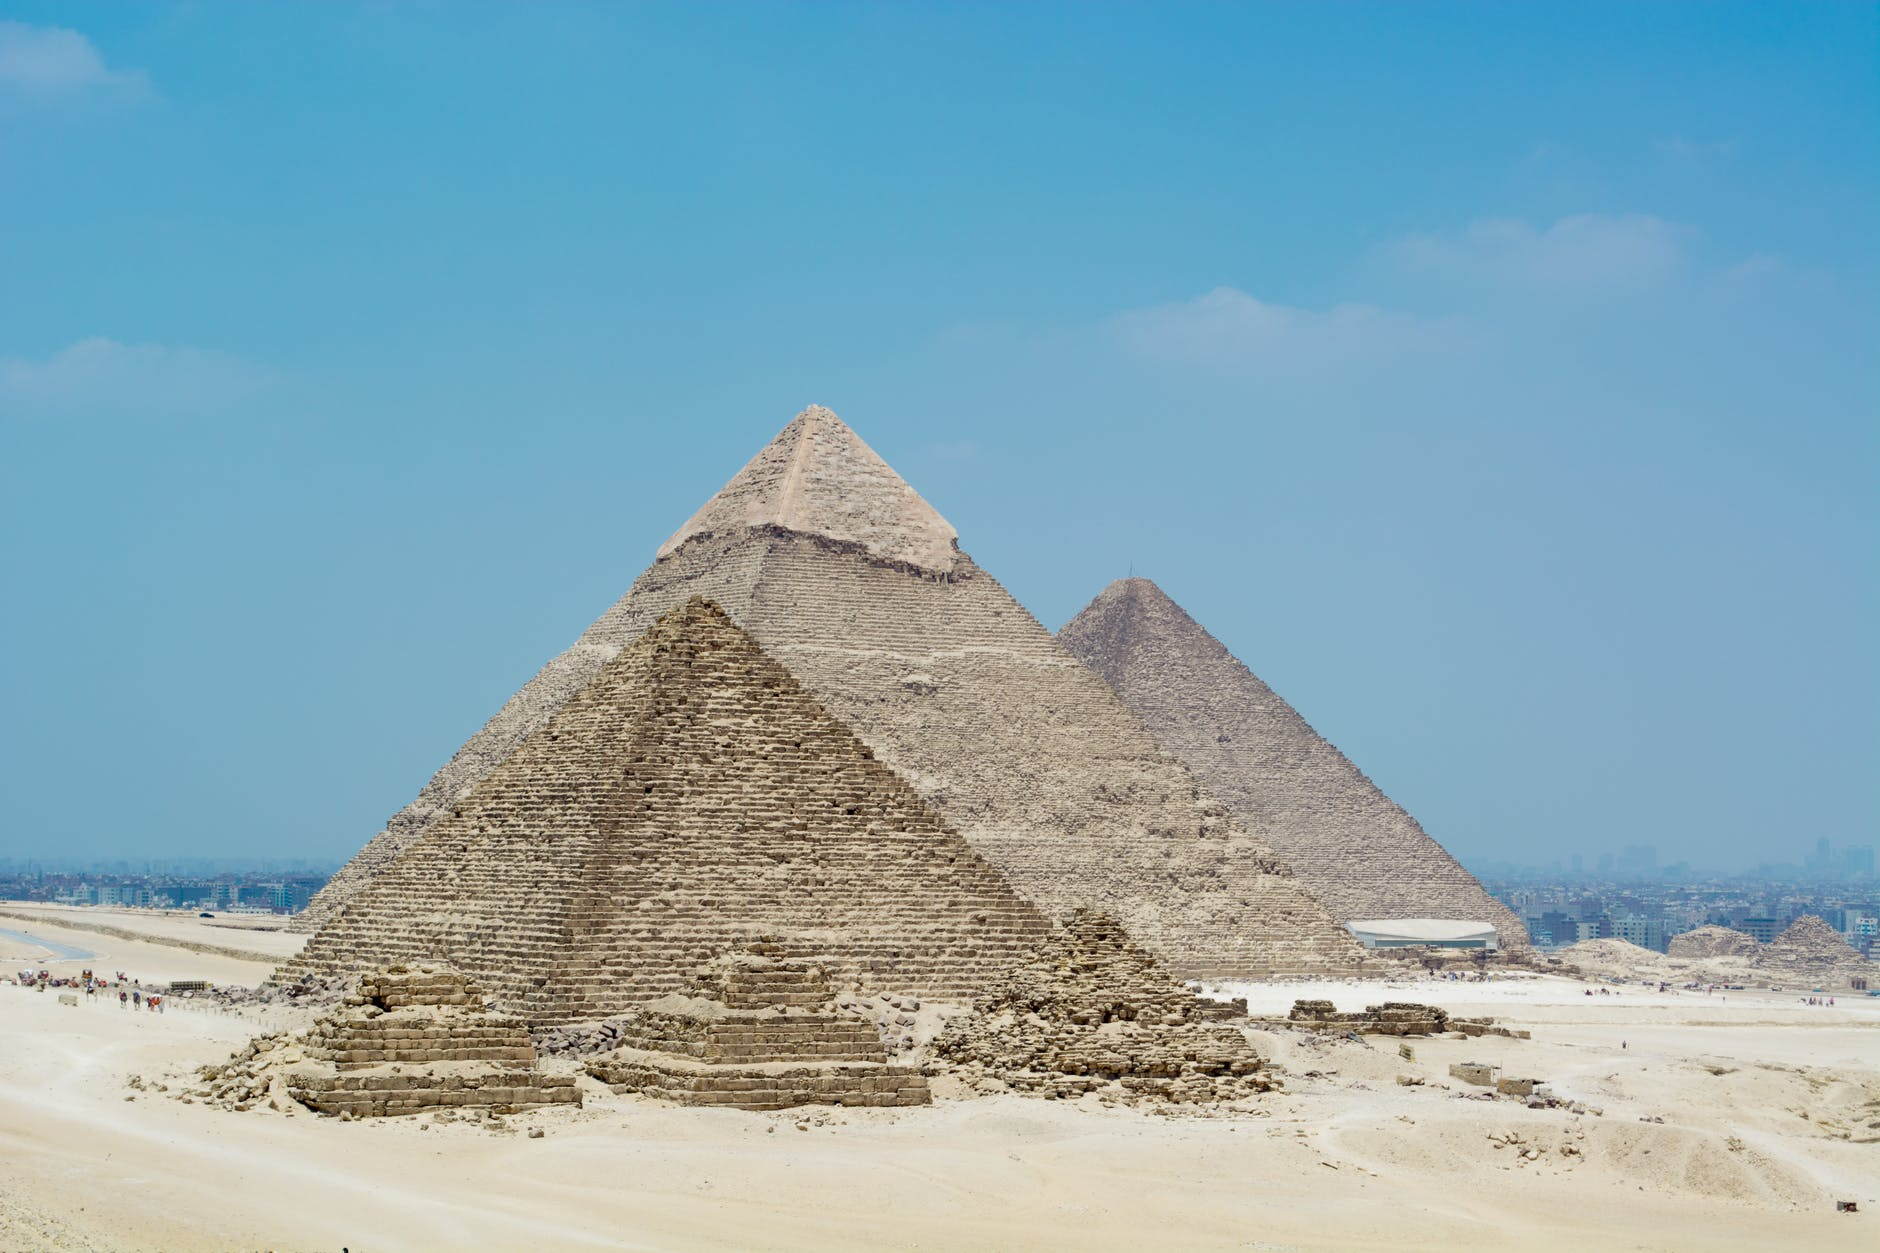 Egypt Tells Elon Musk Pyramids Were Not Built By Aliens